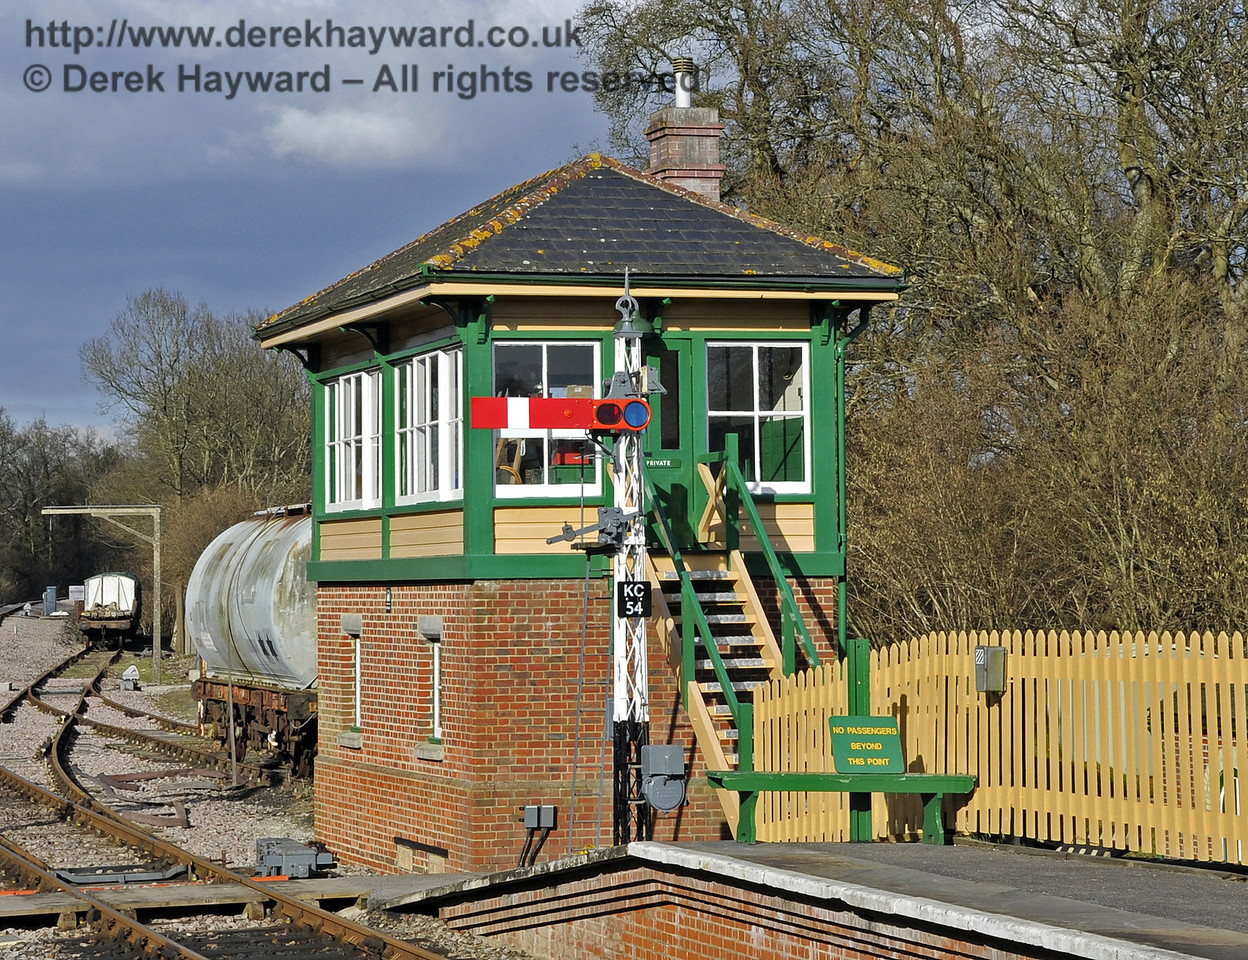 The starting signal (KC54) at the north end of Kingscote Station, outside Kingscote Signal Box.  17.02.2013  6173